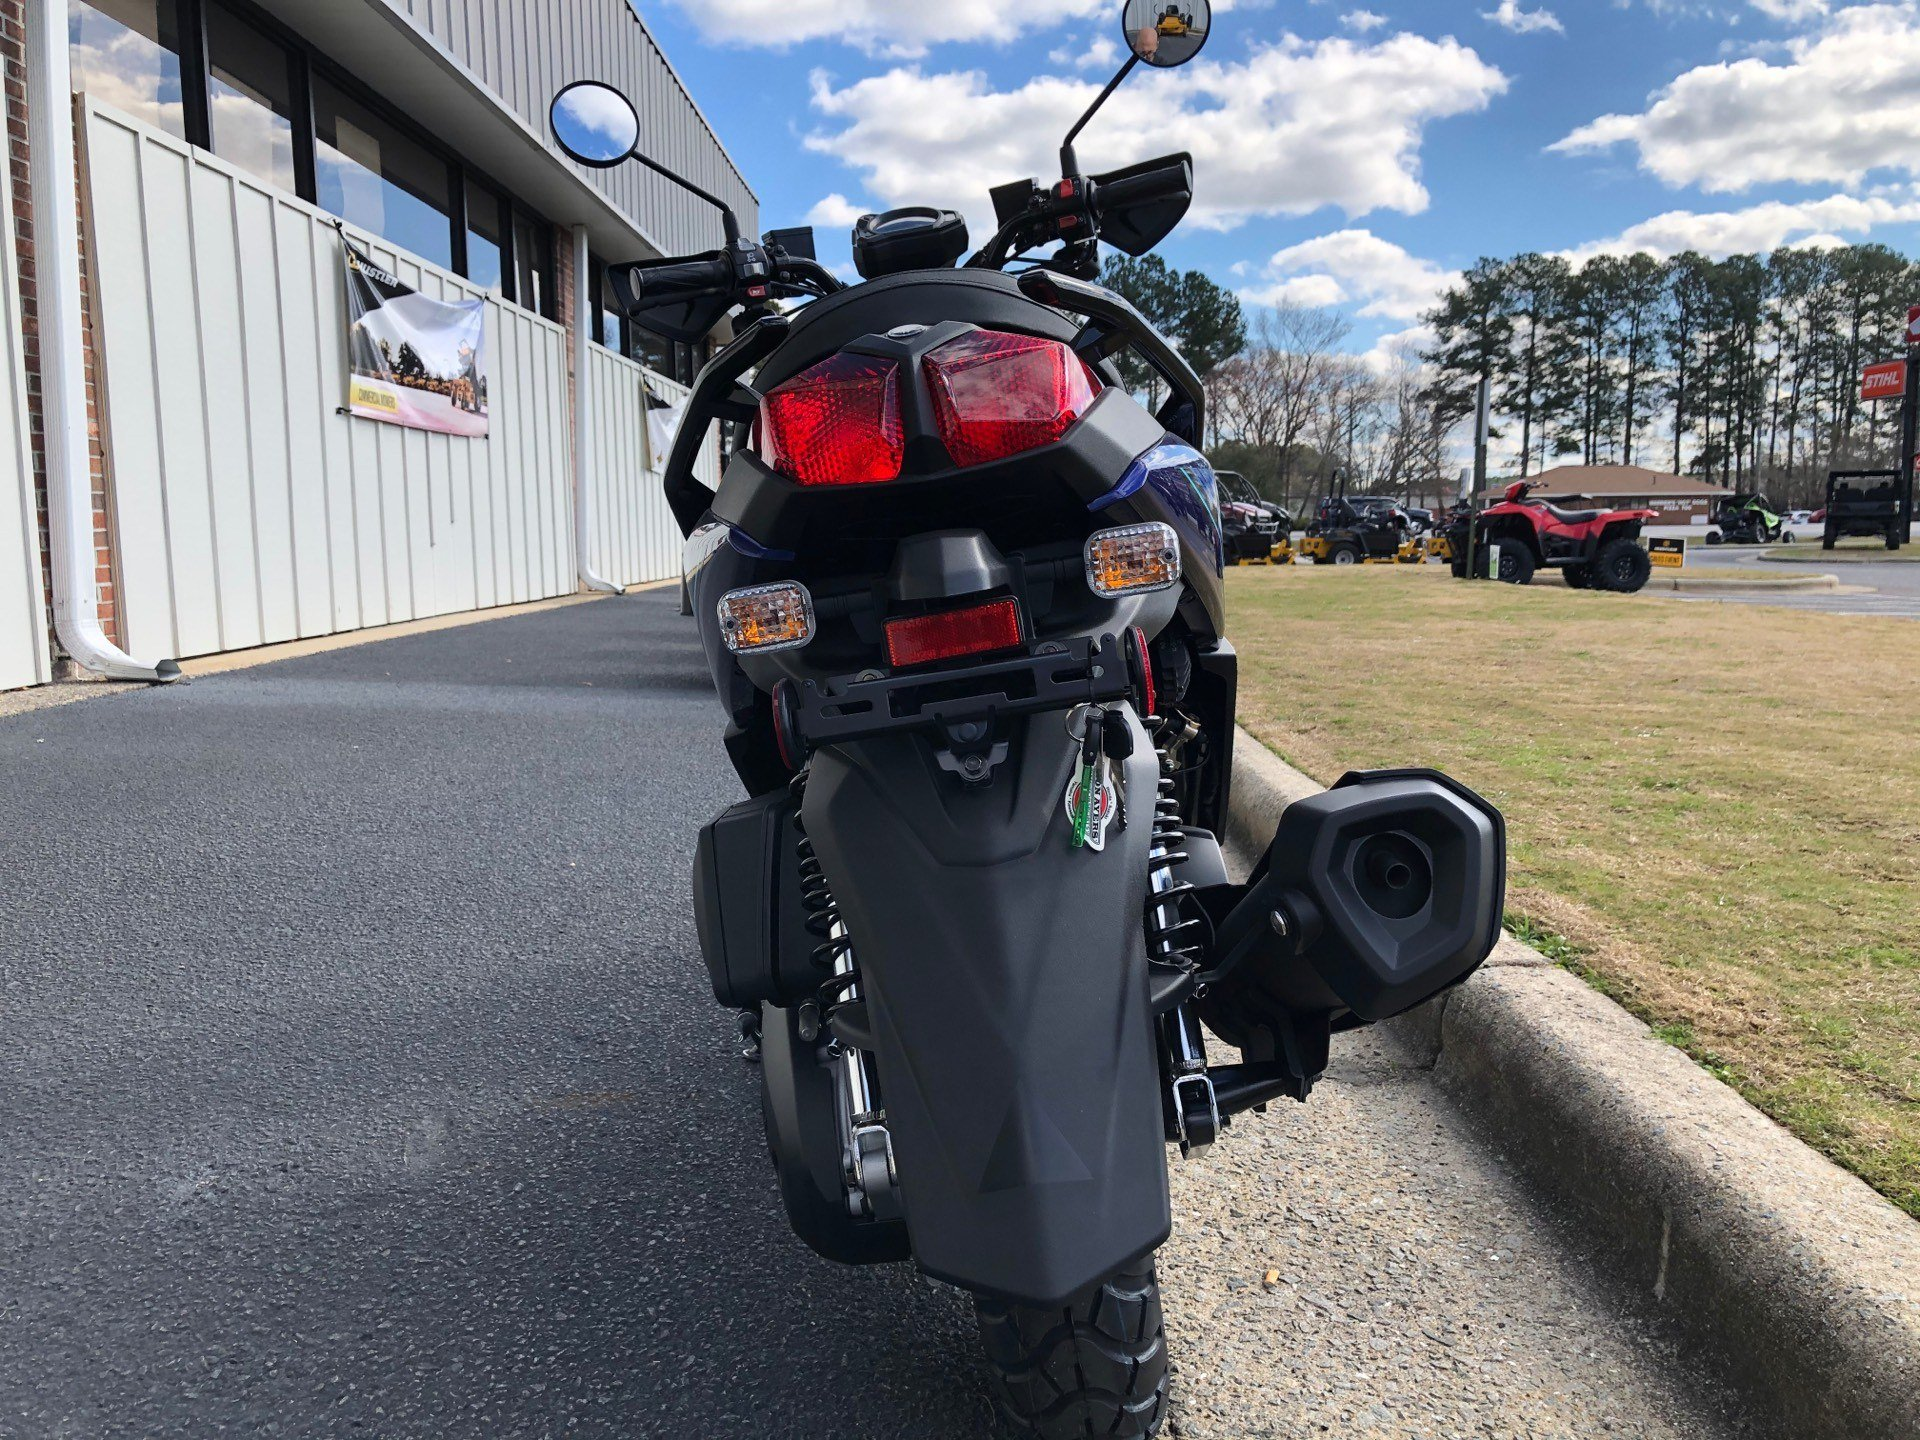 2020 Yamaha Zuma 125 in Greenville, North Carolina - Photo 10